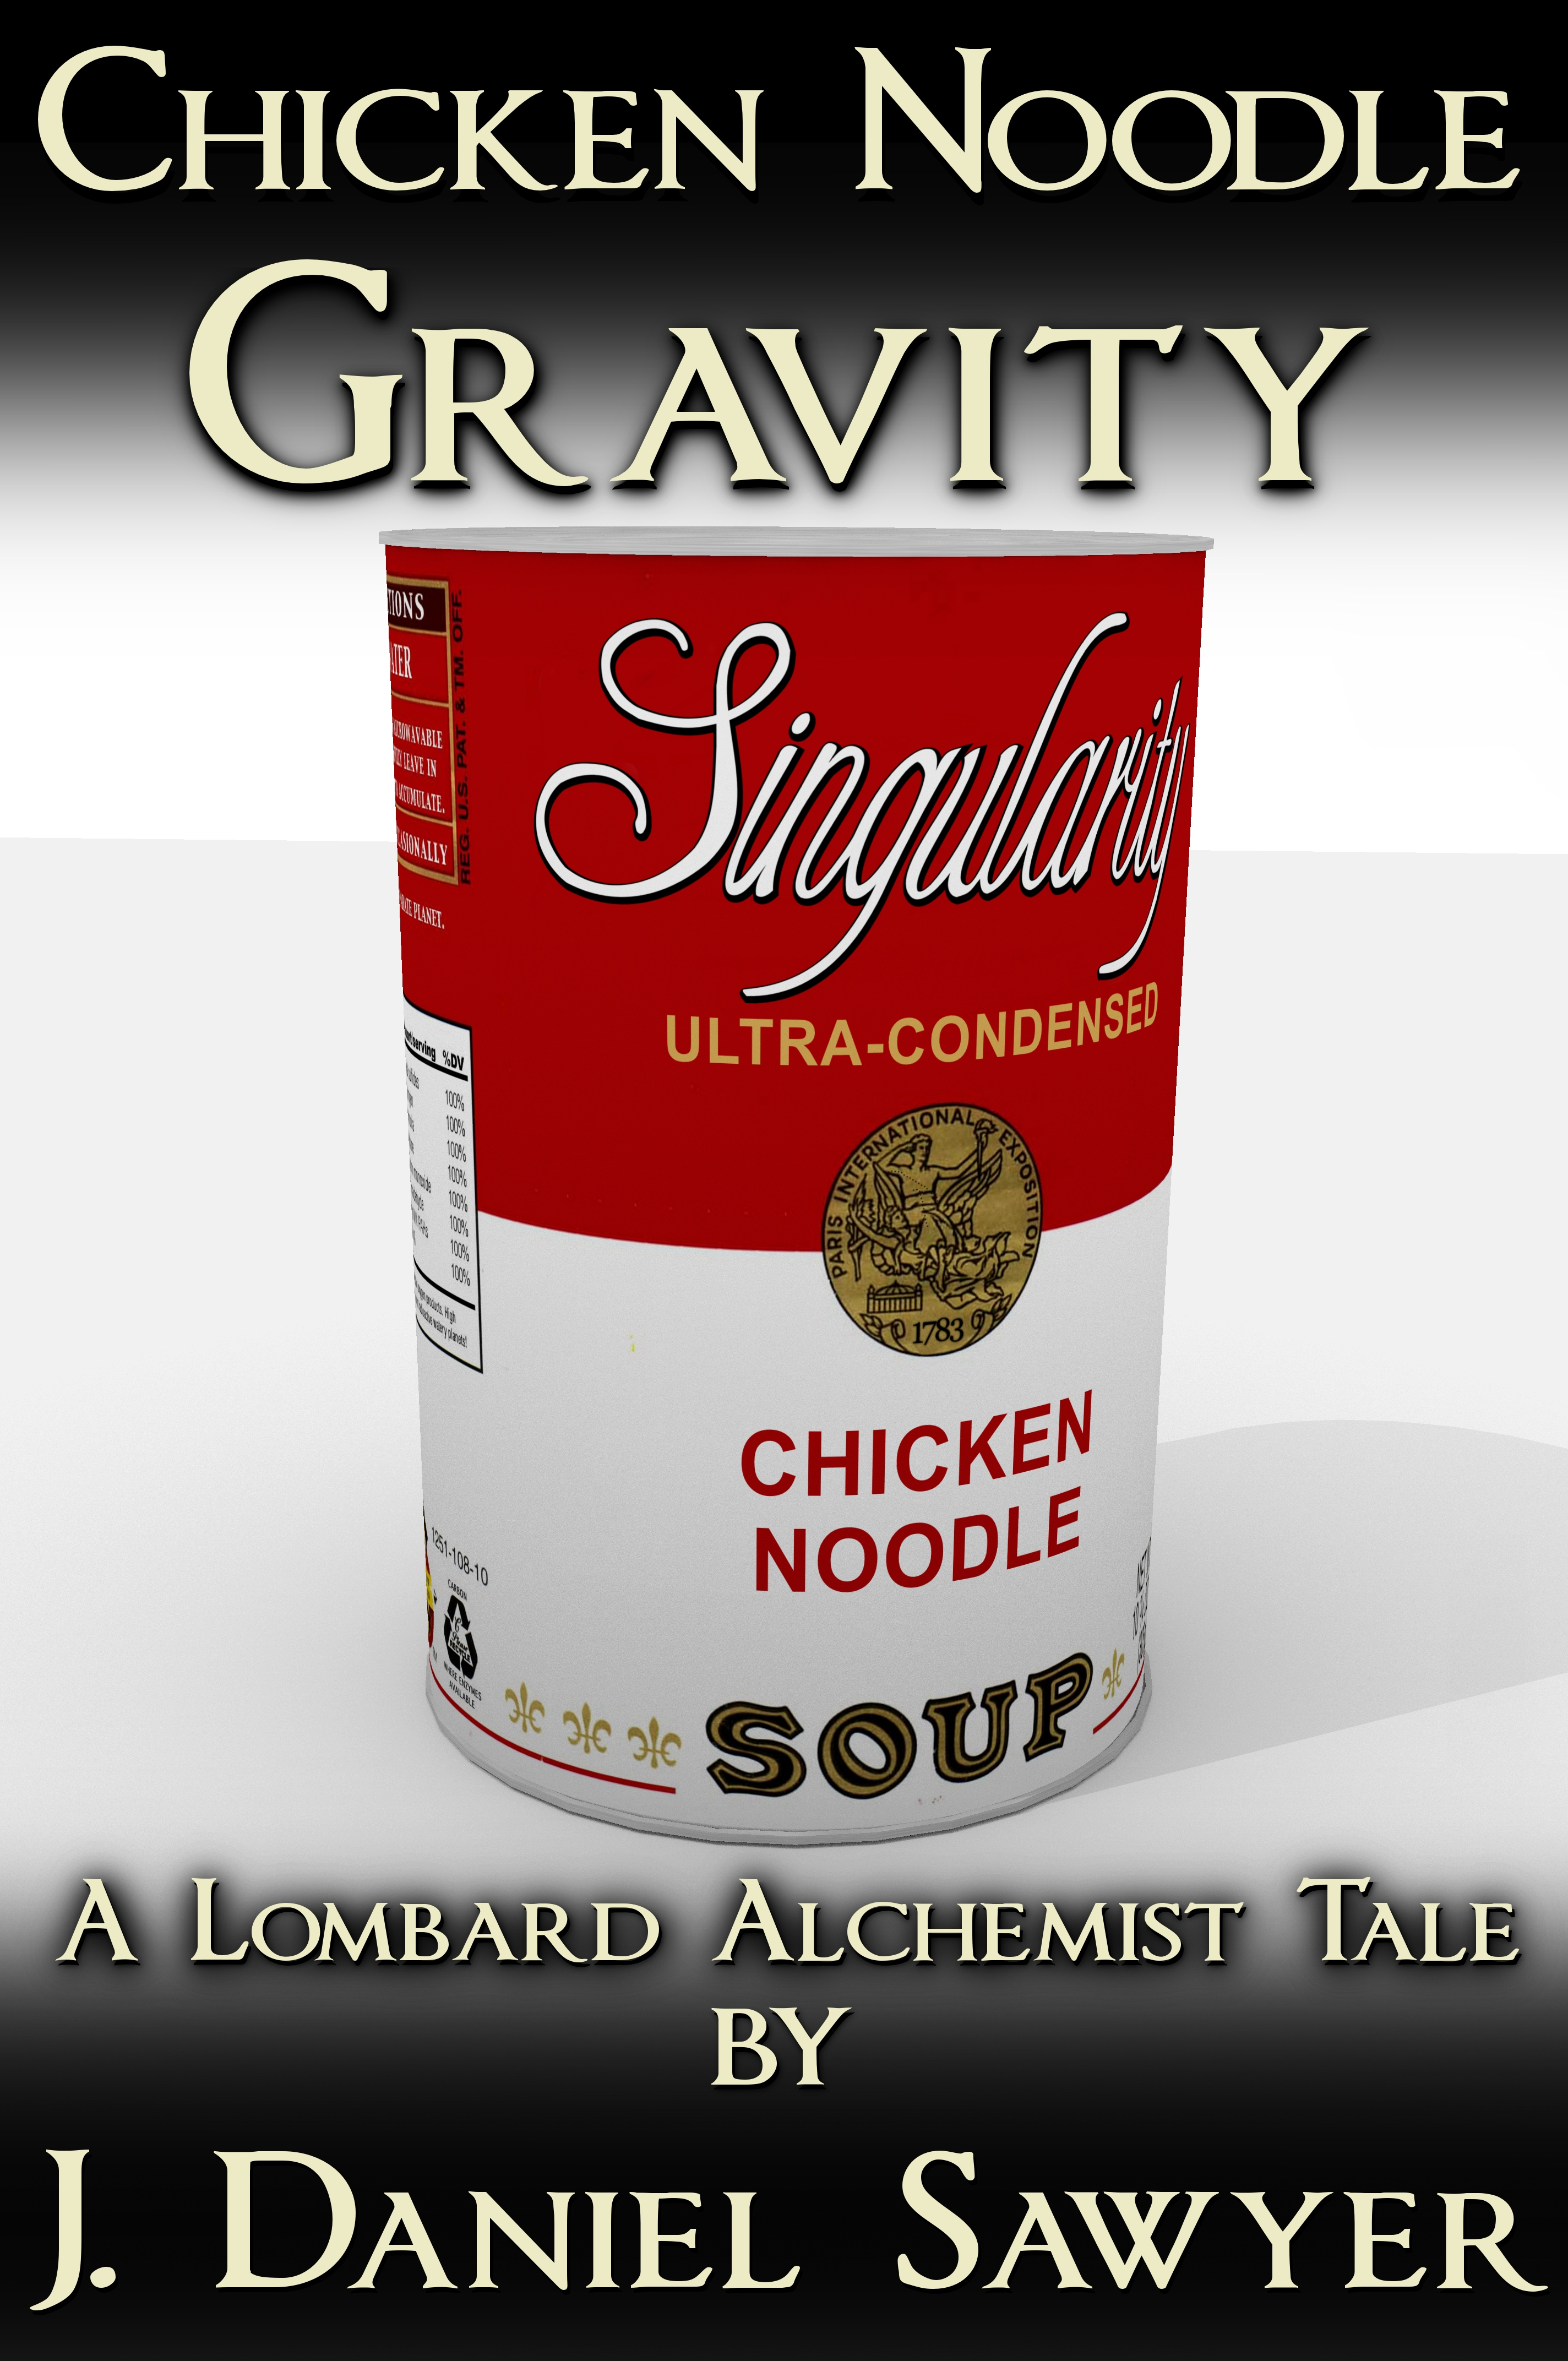 Chicken Noodle Gravity cover